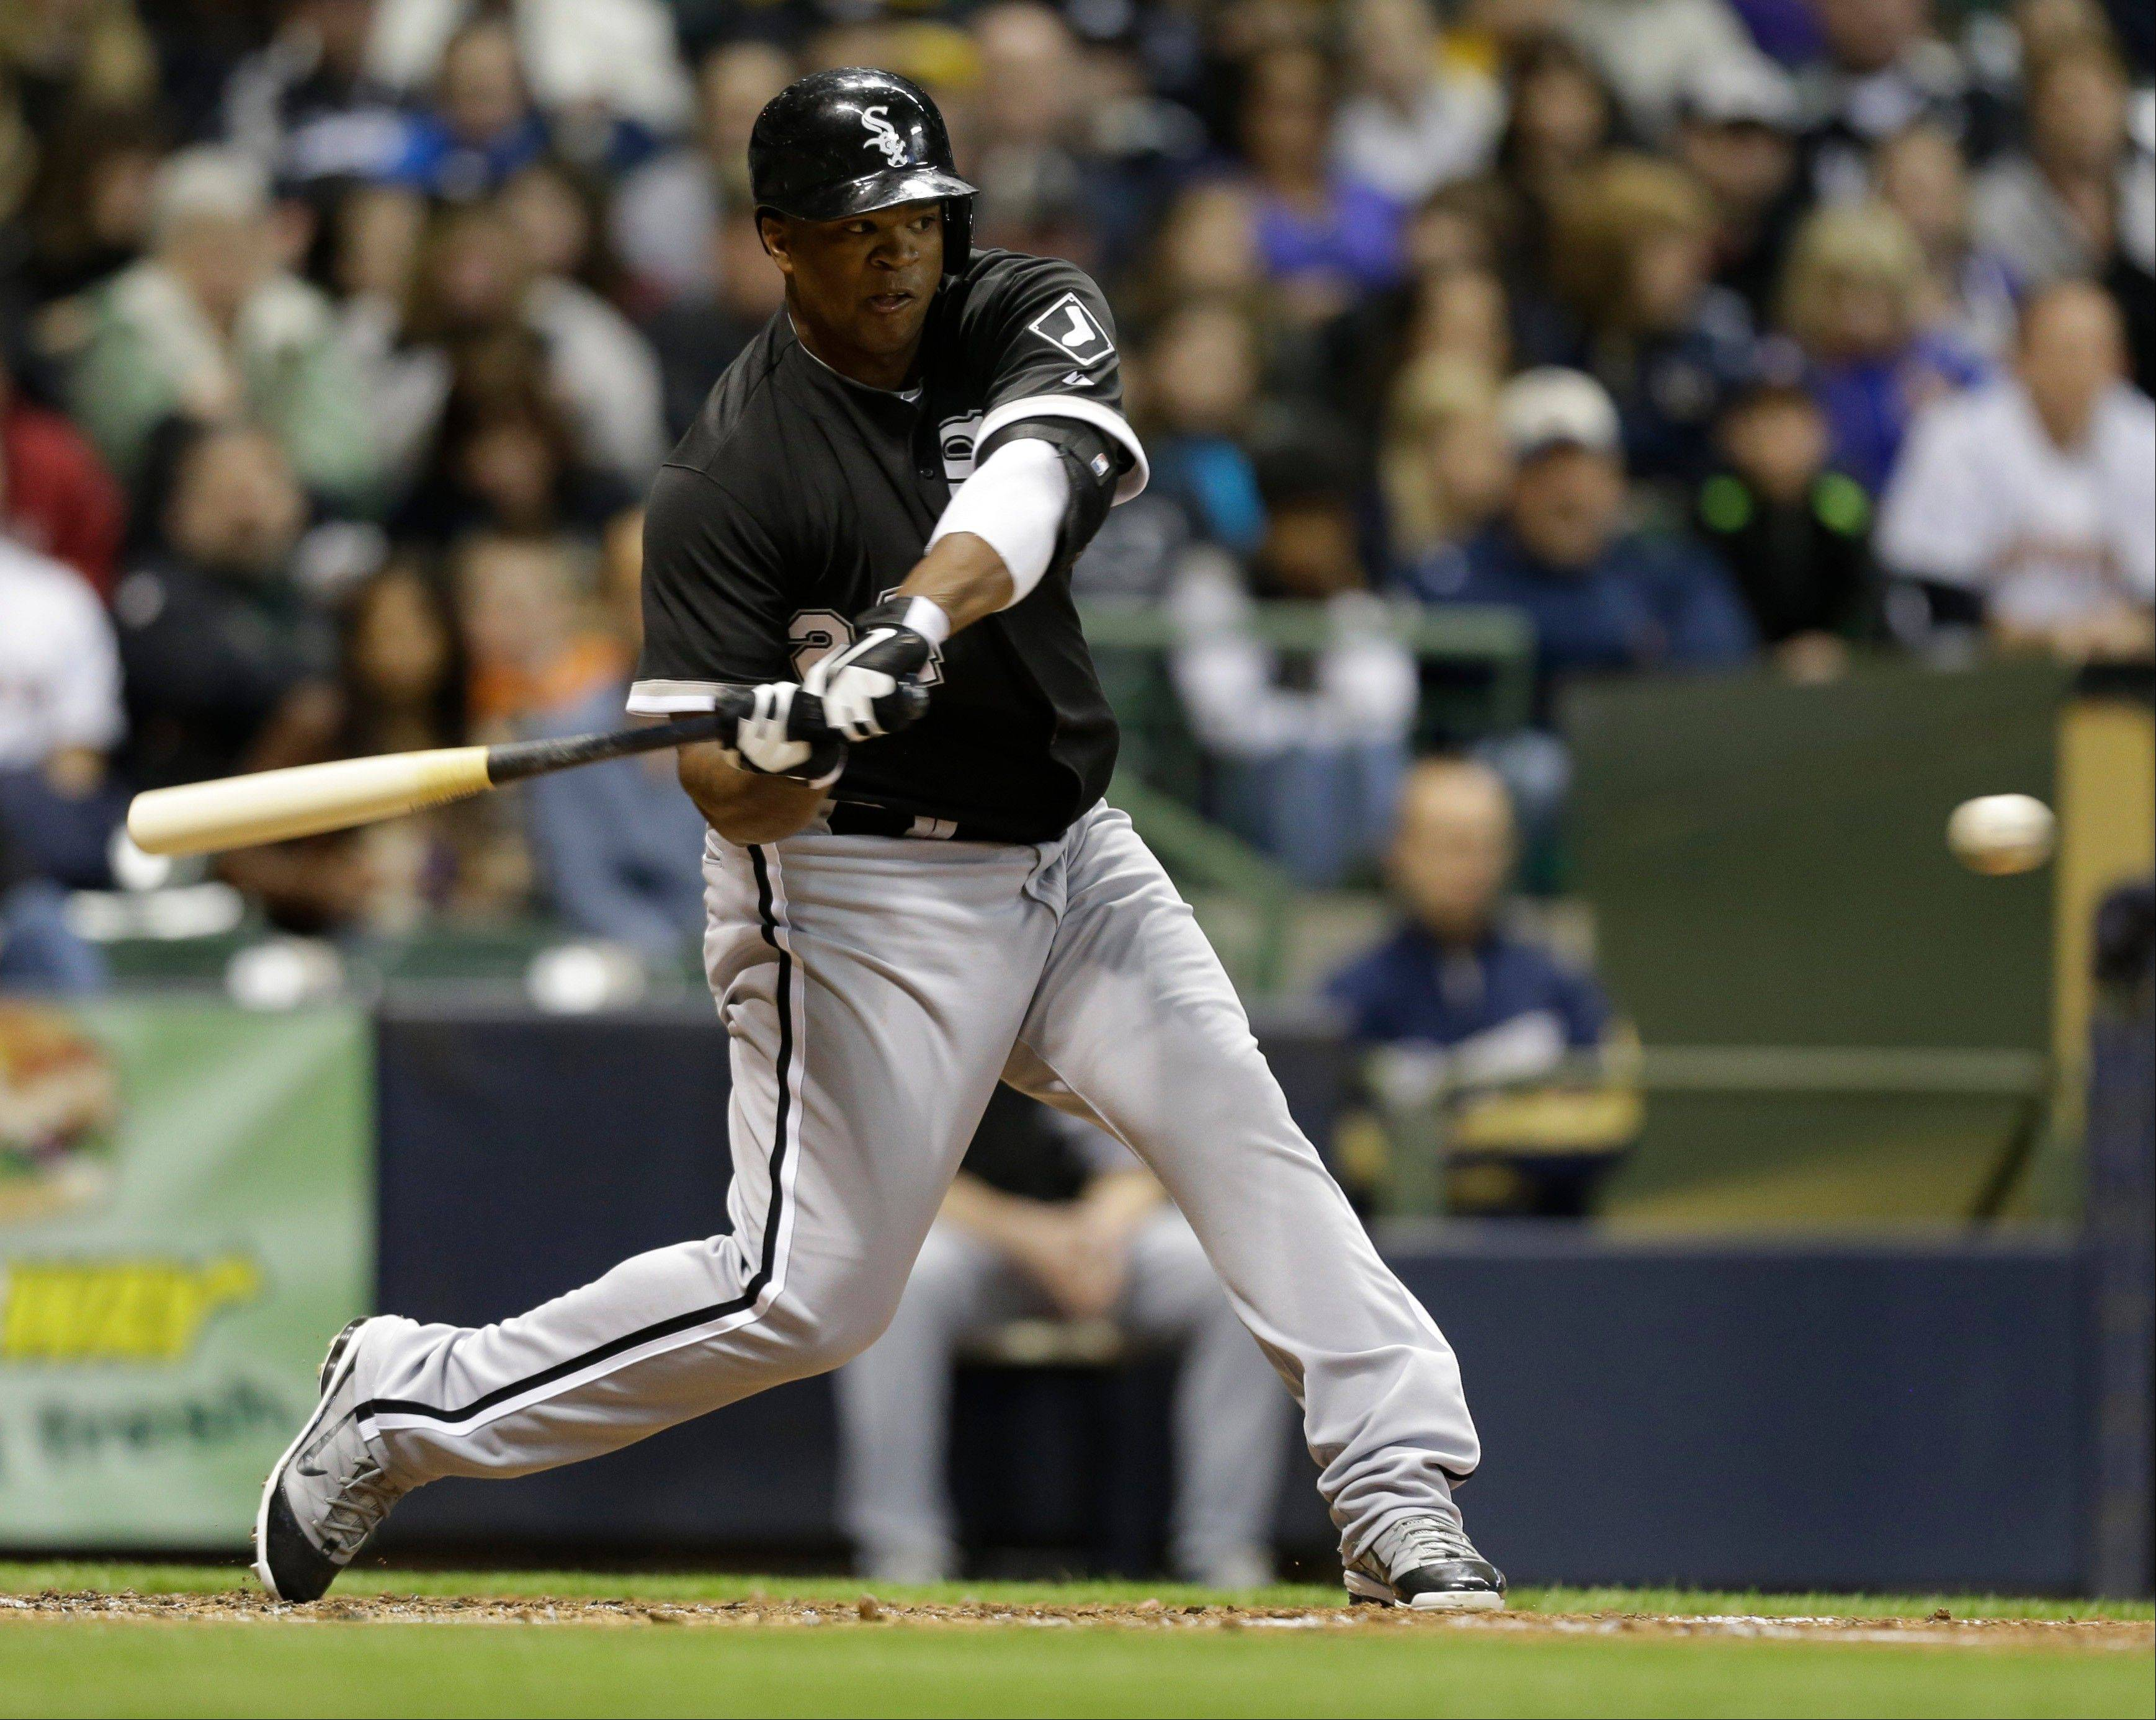 Dayan Viciedo and the White Sox open their season Monday at home against the Kansas City Royals.